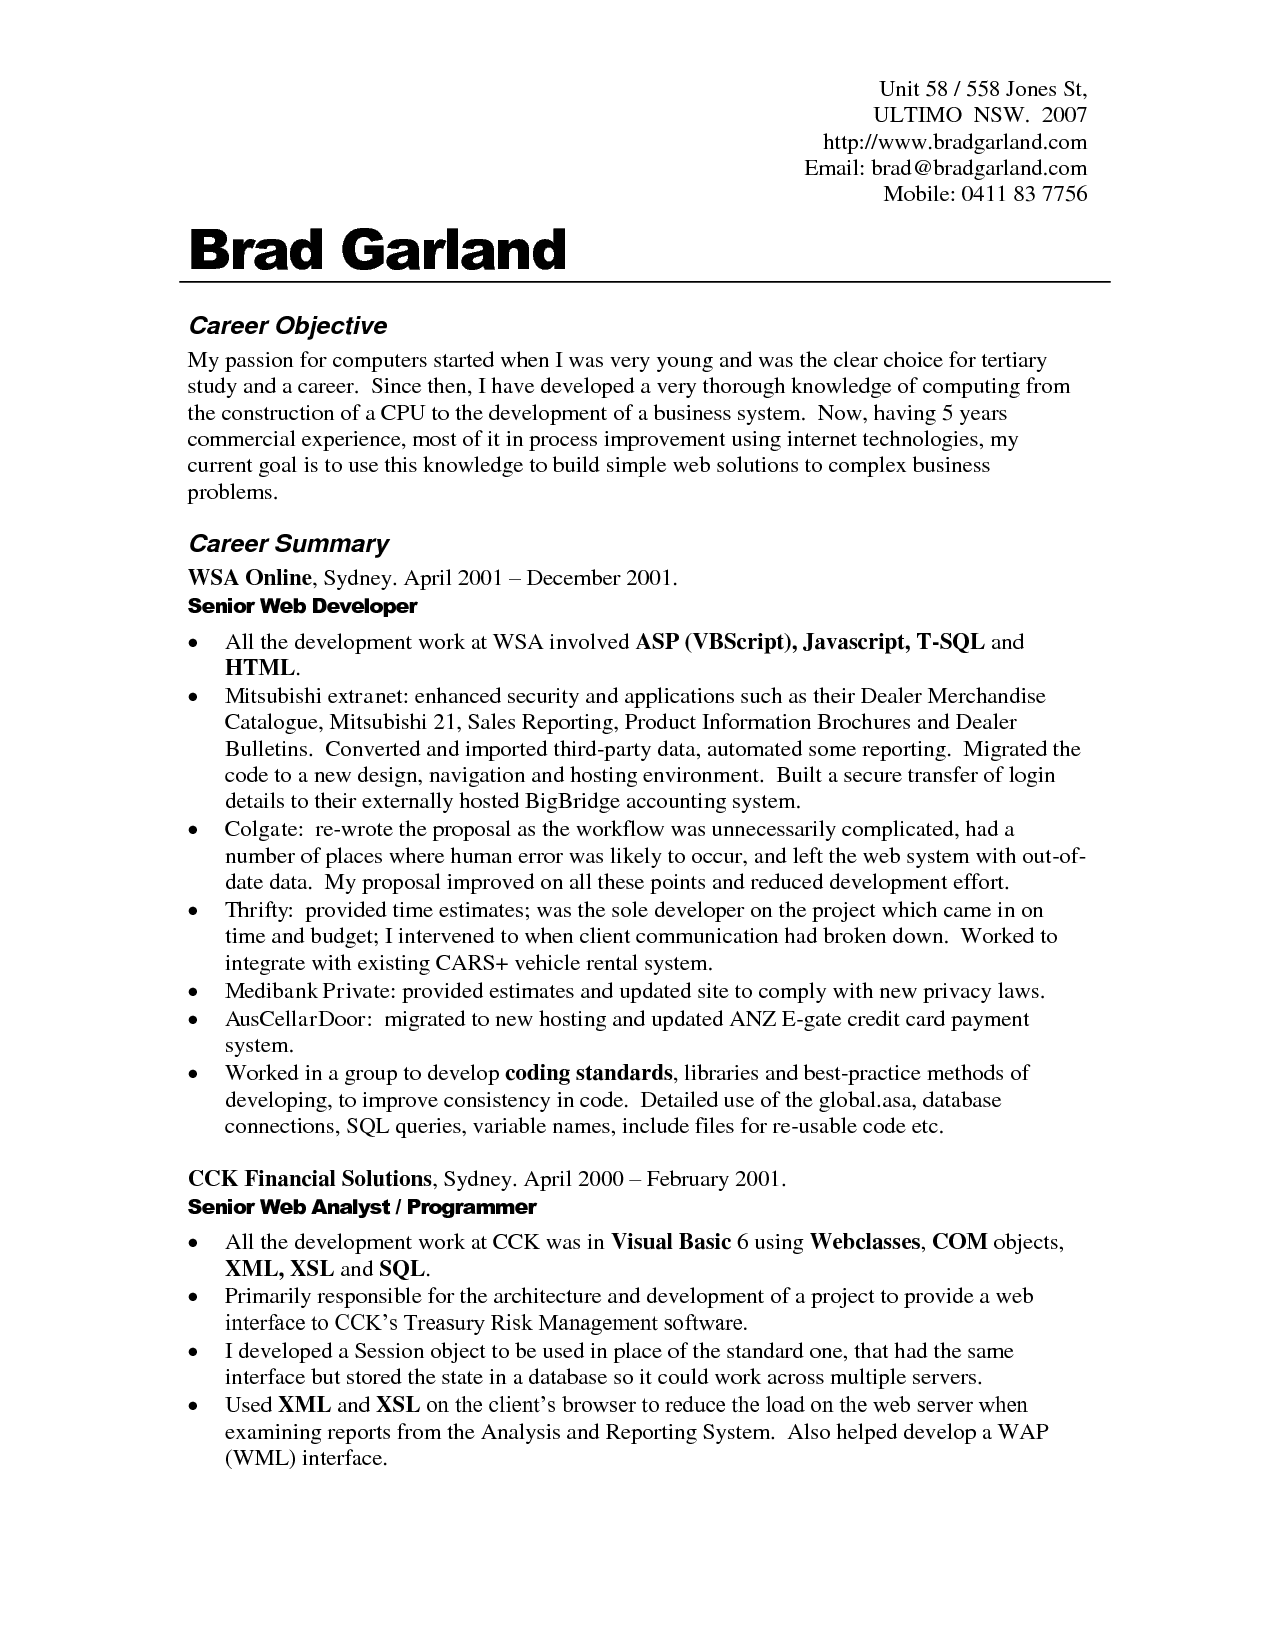 career objective for a software engineer resume – Objectives for Resume